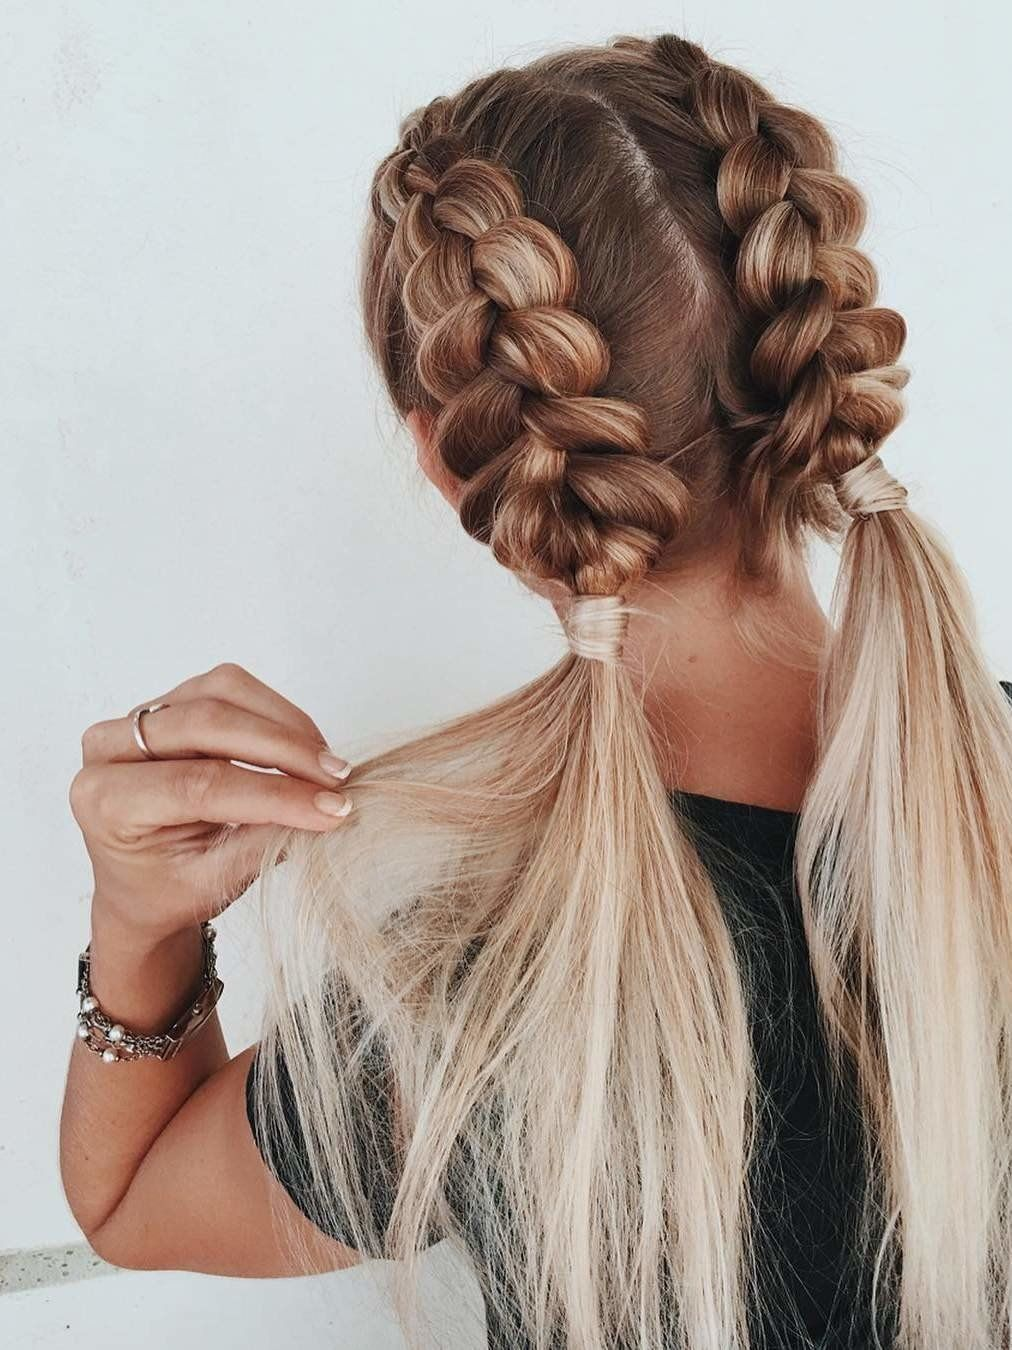 11 Braided Hairstyles That People Are Loving on Pinterest  Hair